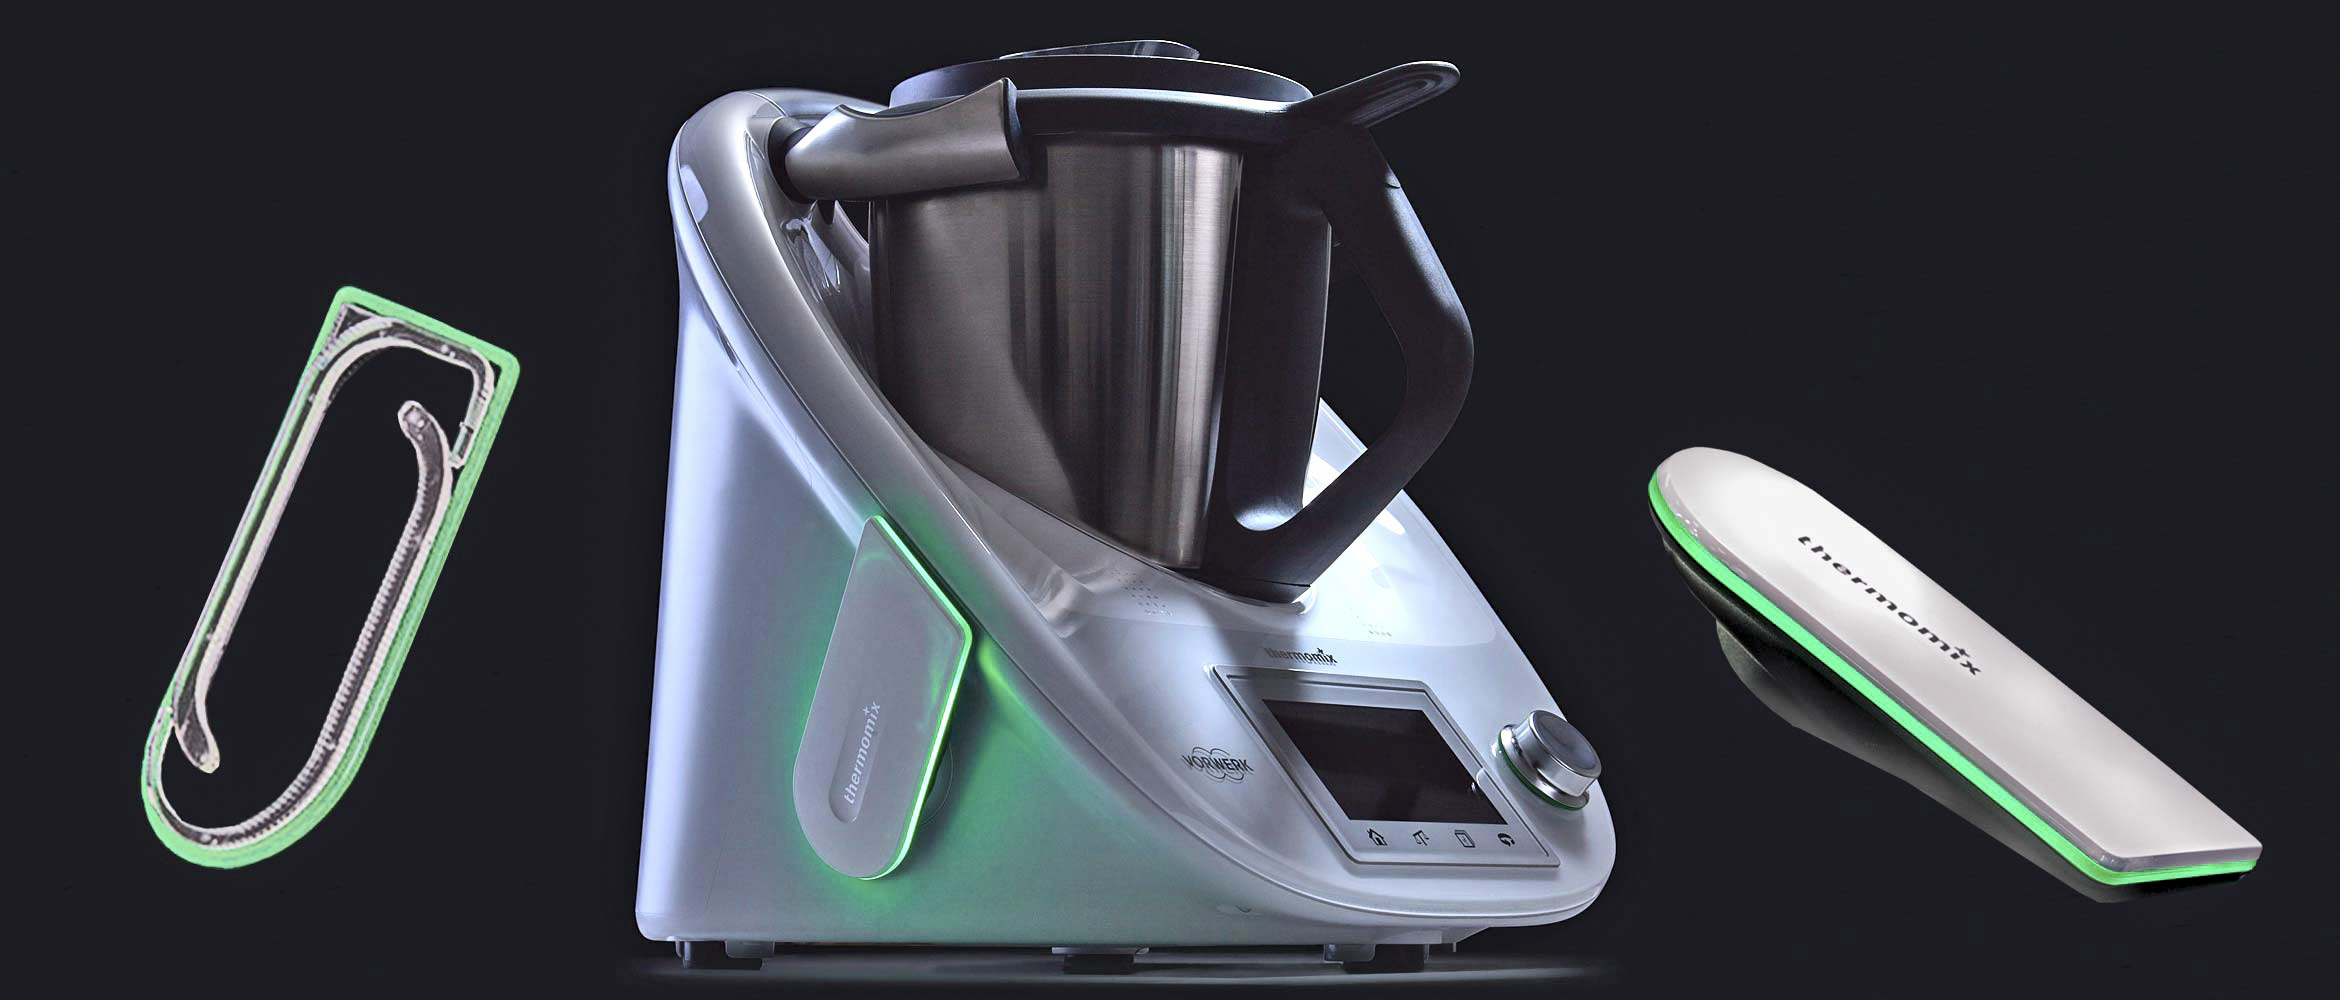 Custom product lighting for an intelligent food mixer by Thermomix